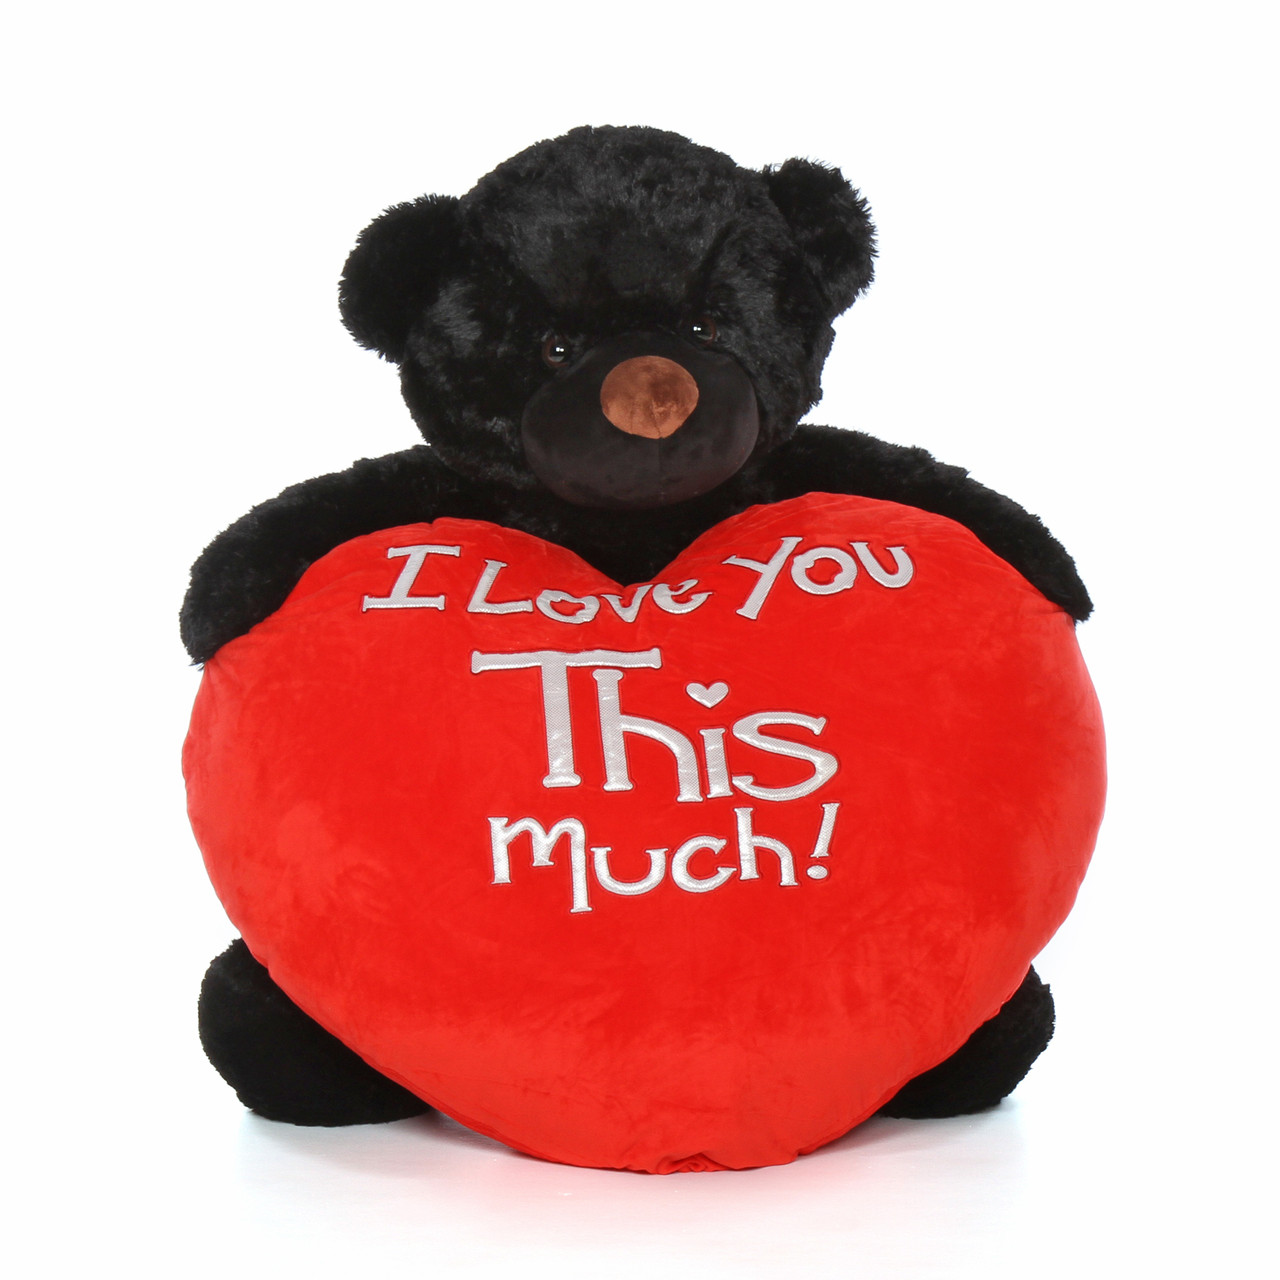 4ft cuddles life size valentines day gift giant teddy bear black fur red plush heart - Giant Teddy Bears For Valentines Day